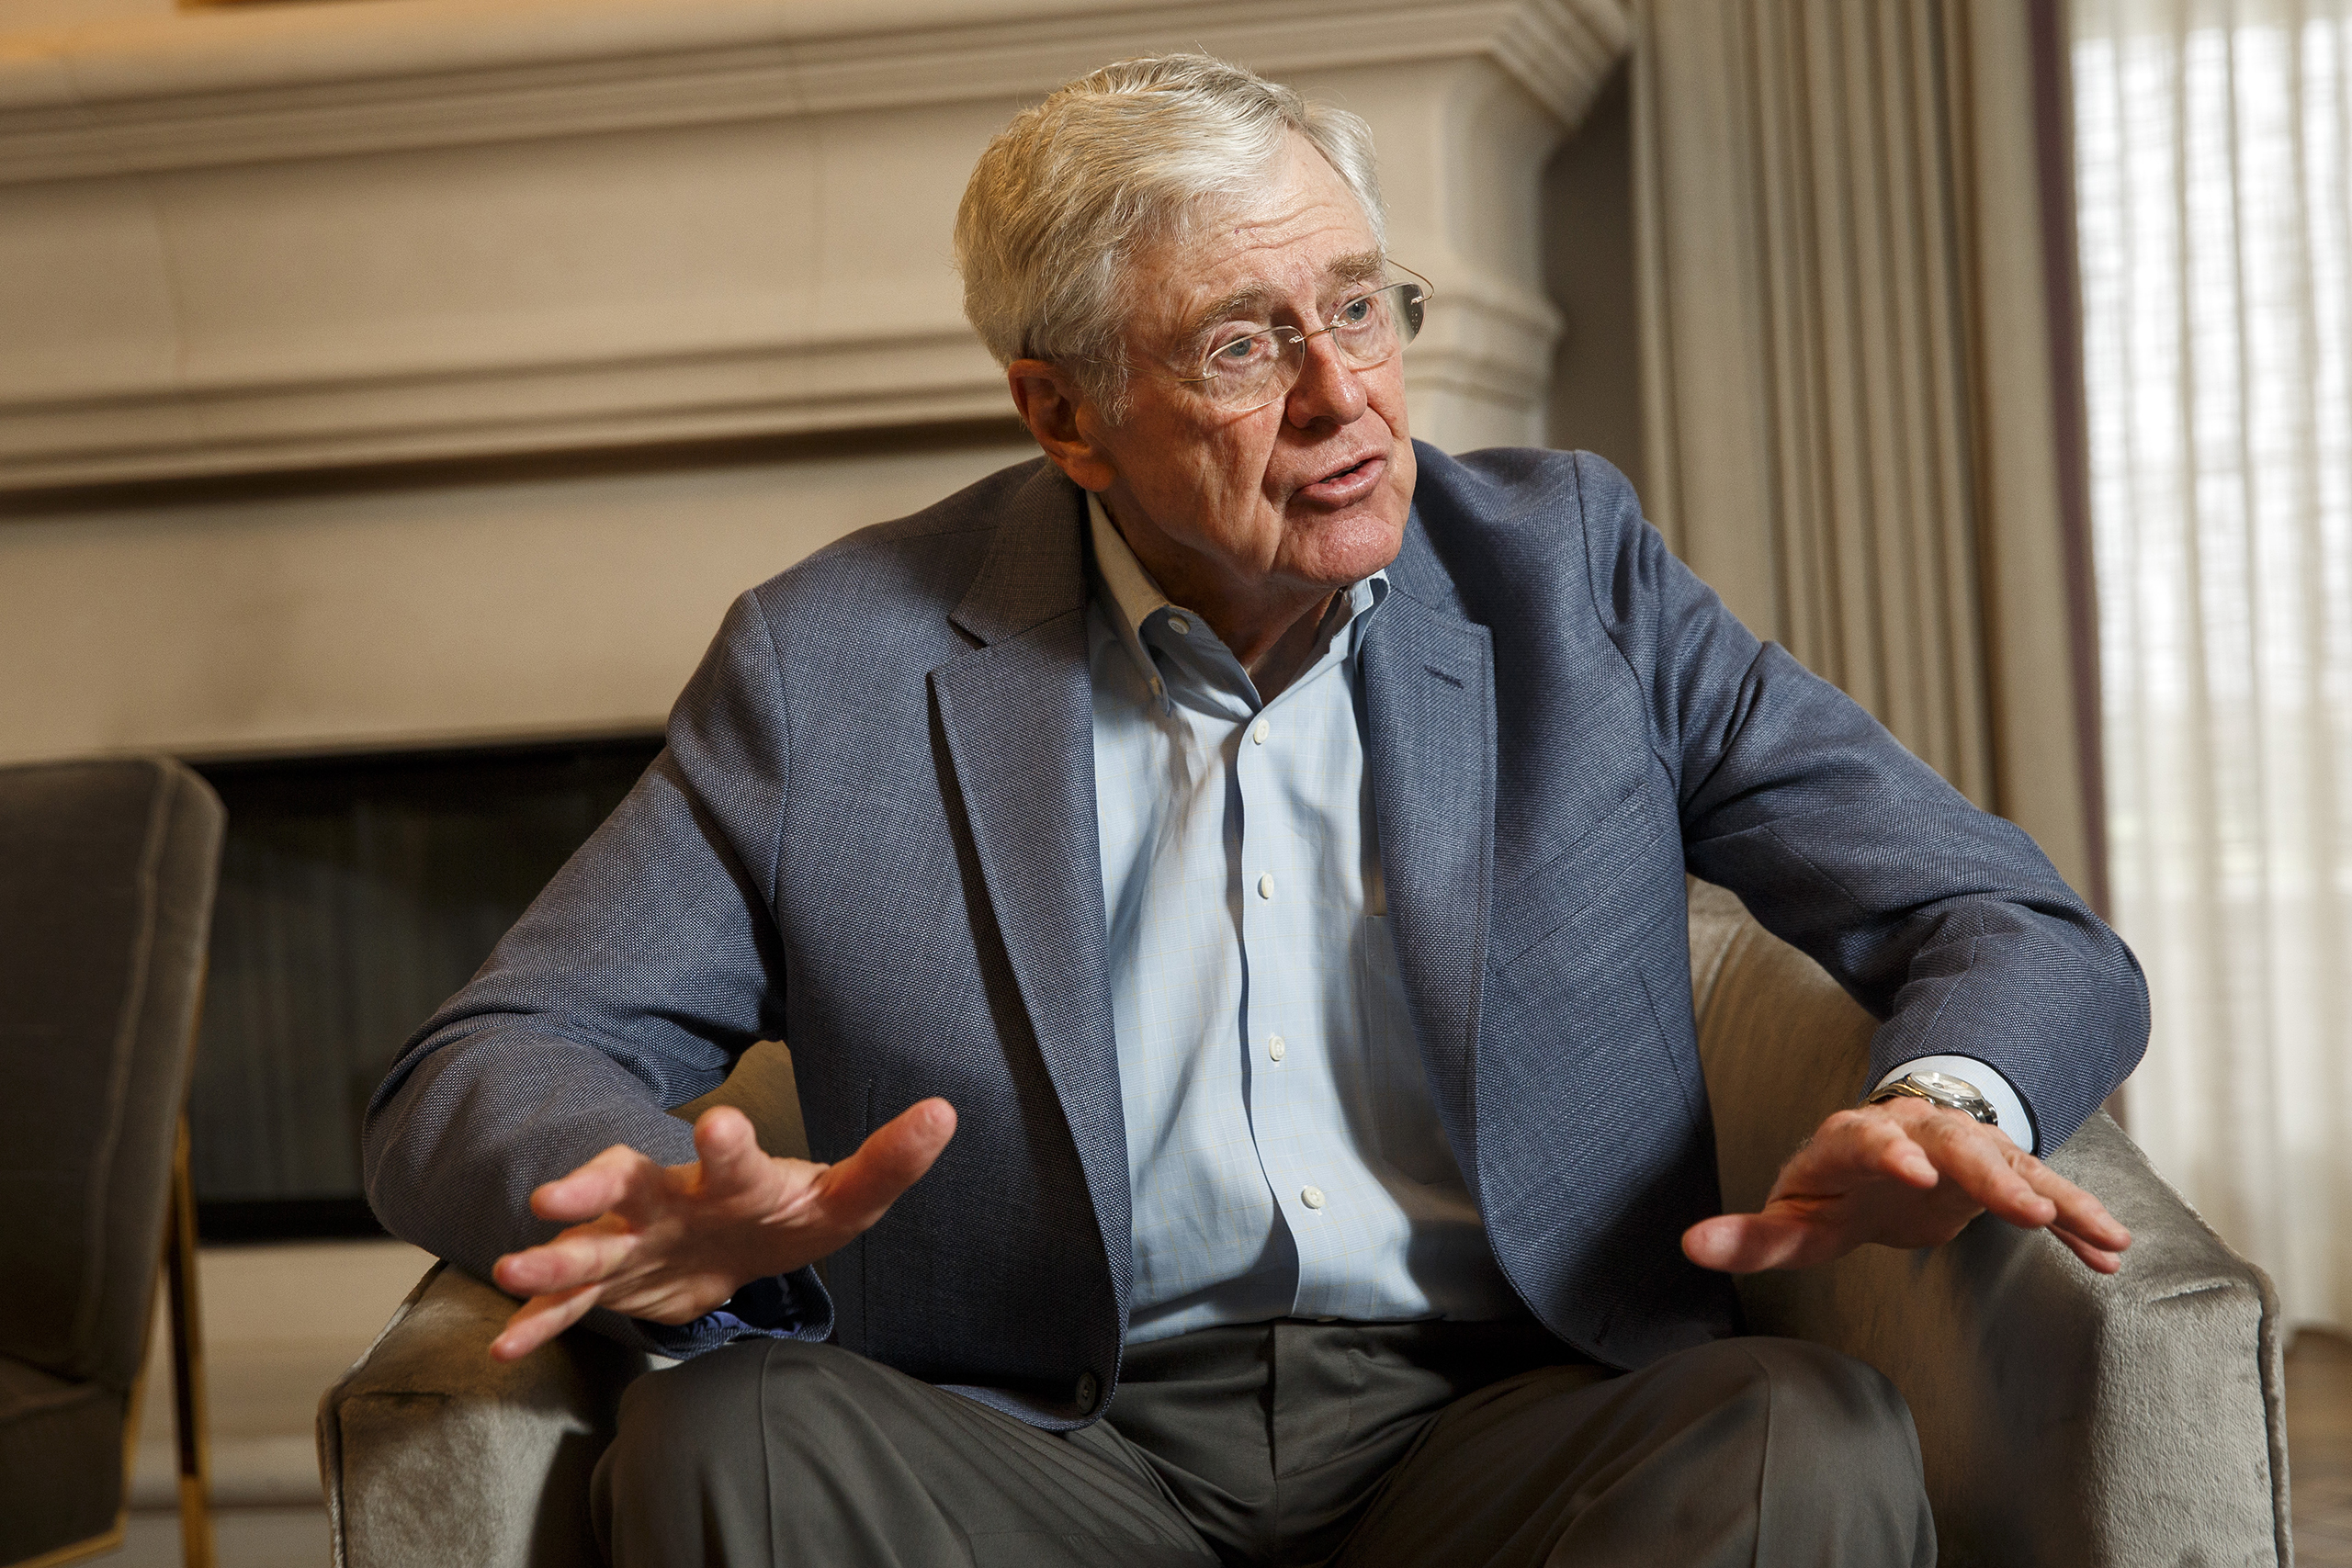 Charles Koch speaks during an interview with the Washington Post at the Freedom Partners Summit in Dana Point, Calif., on Aug. 3, 2015.